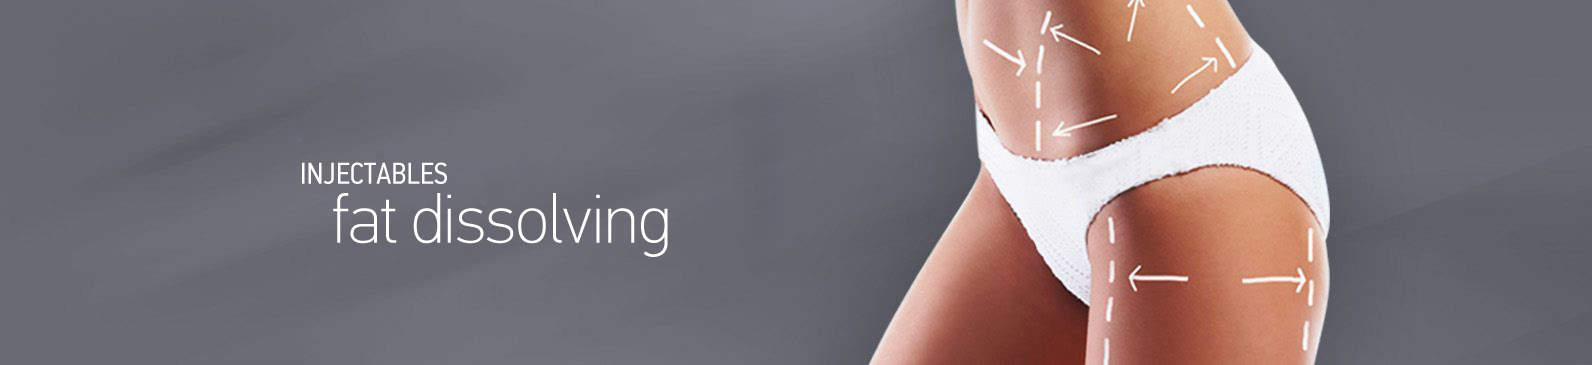 Fat dissolving injections banner